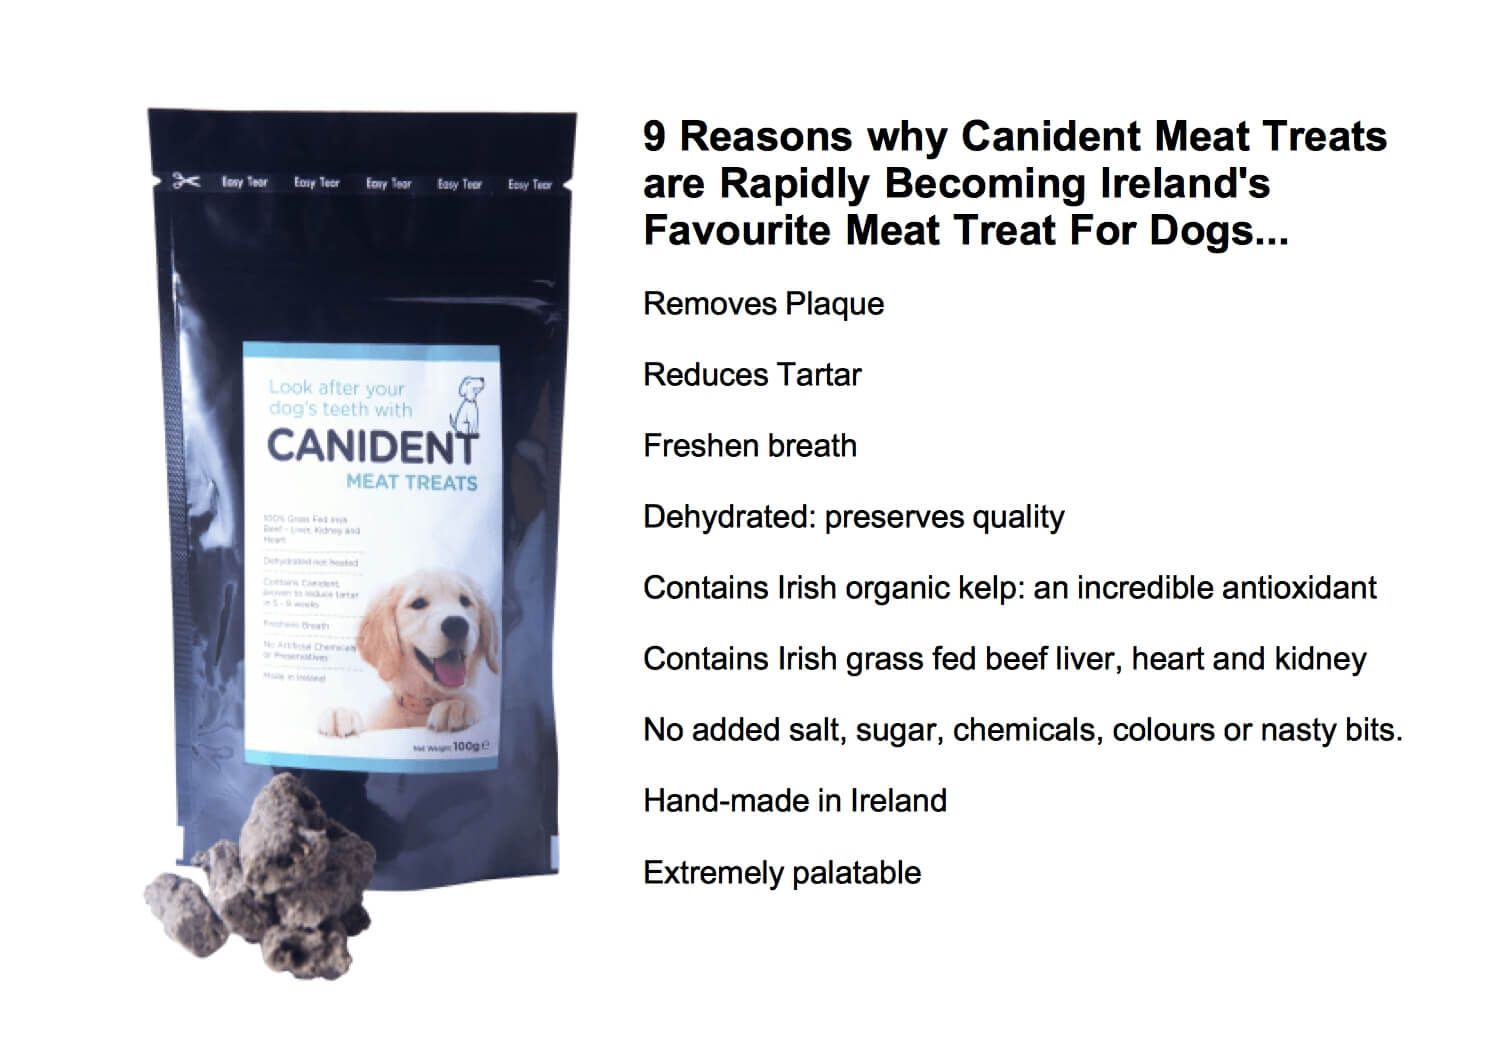 canident meat treats offer a tasty alternative to canident supplement for dogs with gum disease